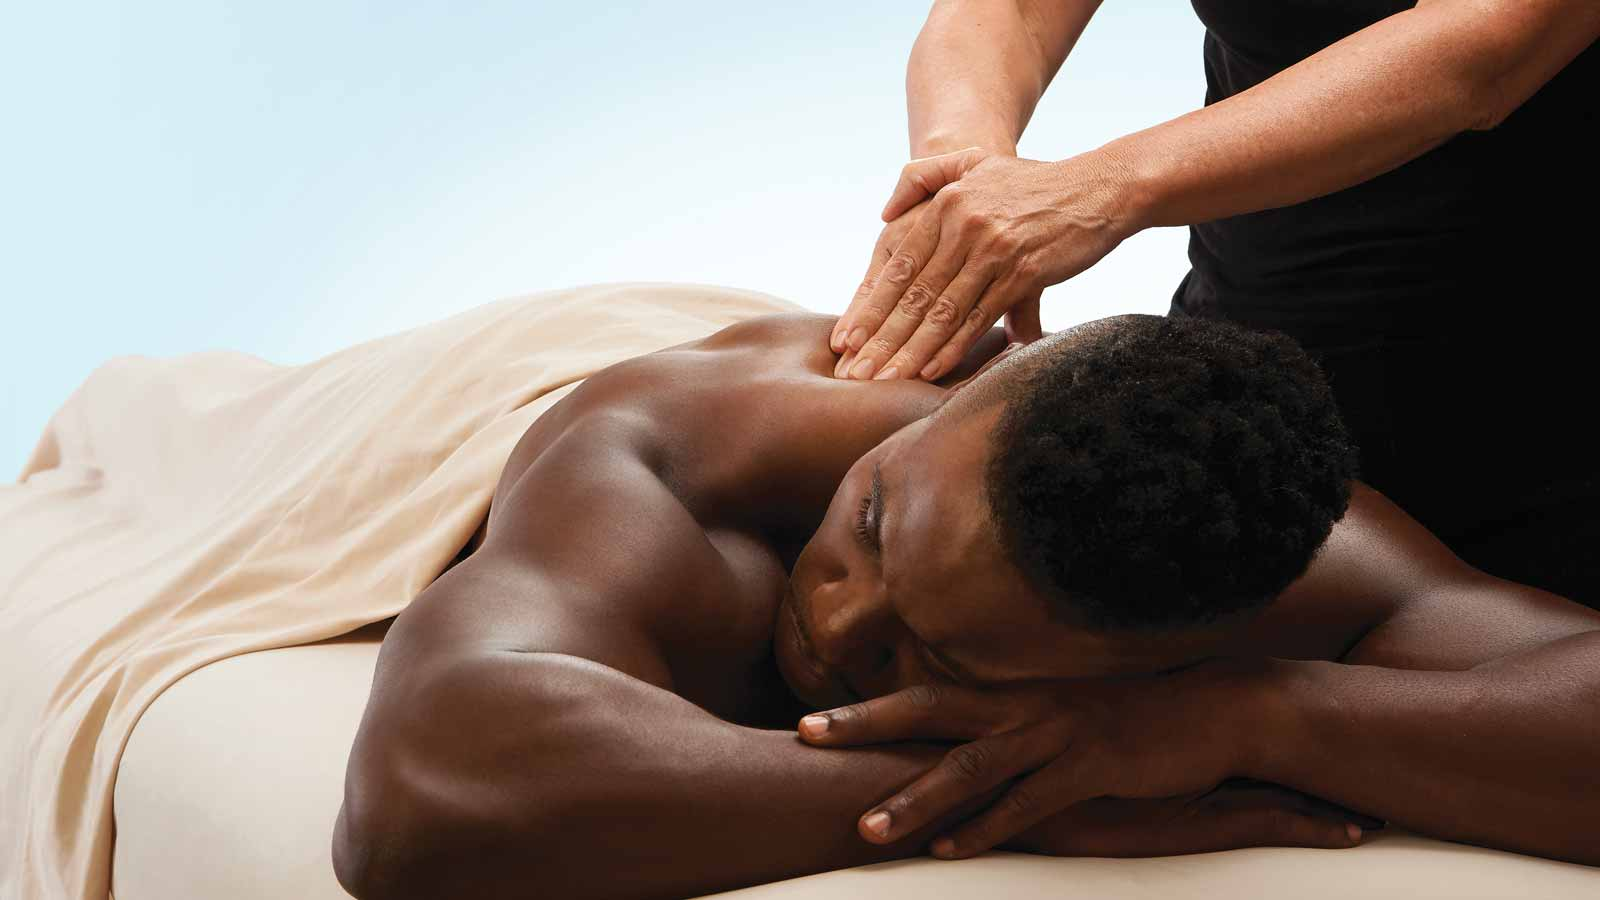 A client covered by a sheet lying face down on a massage table while a massage therapist presses their hands onto his back